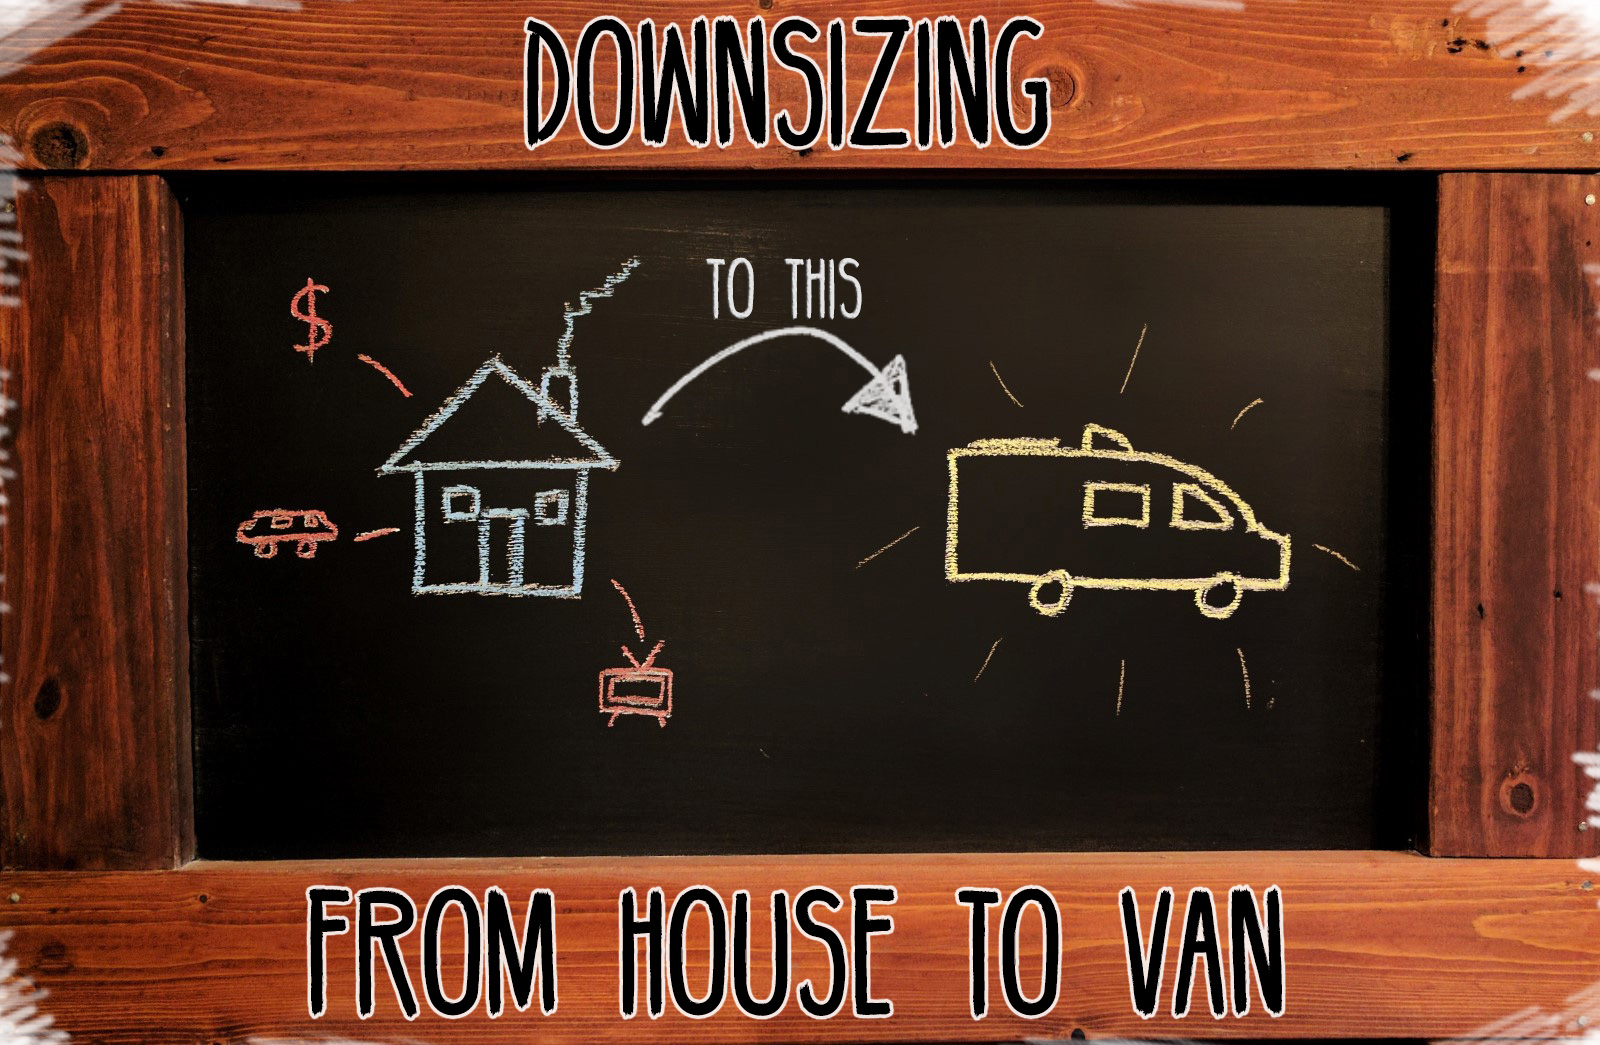 The-Downsizing-(Heading-test)